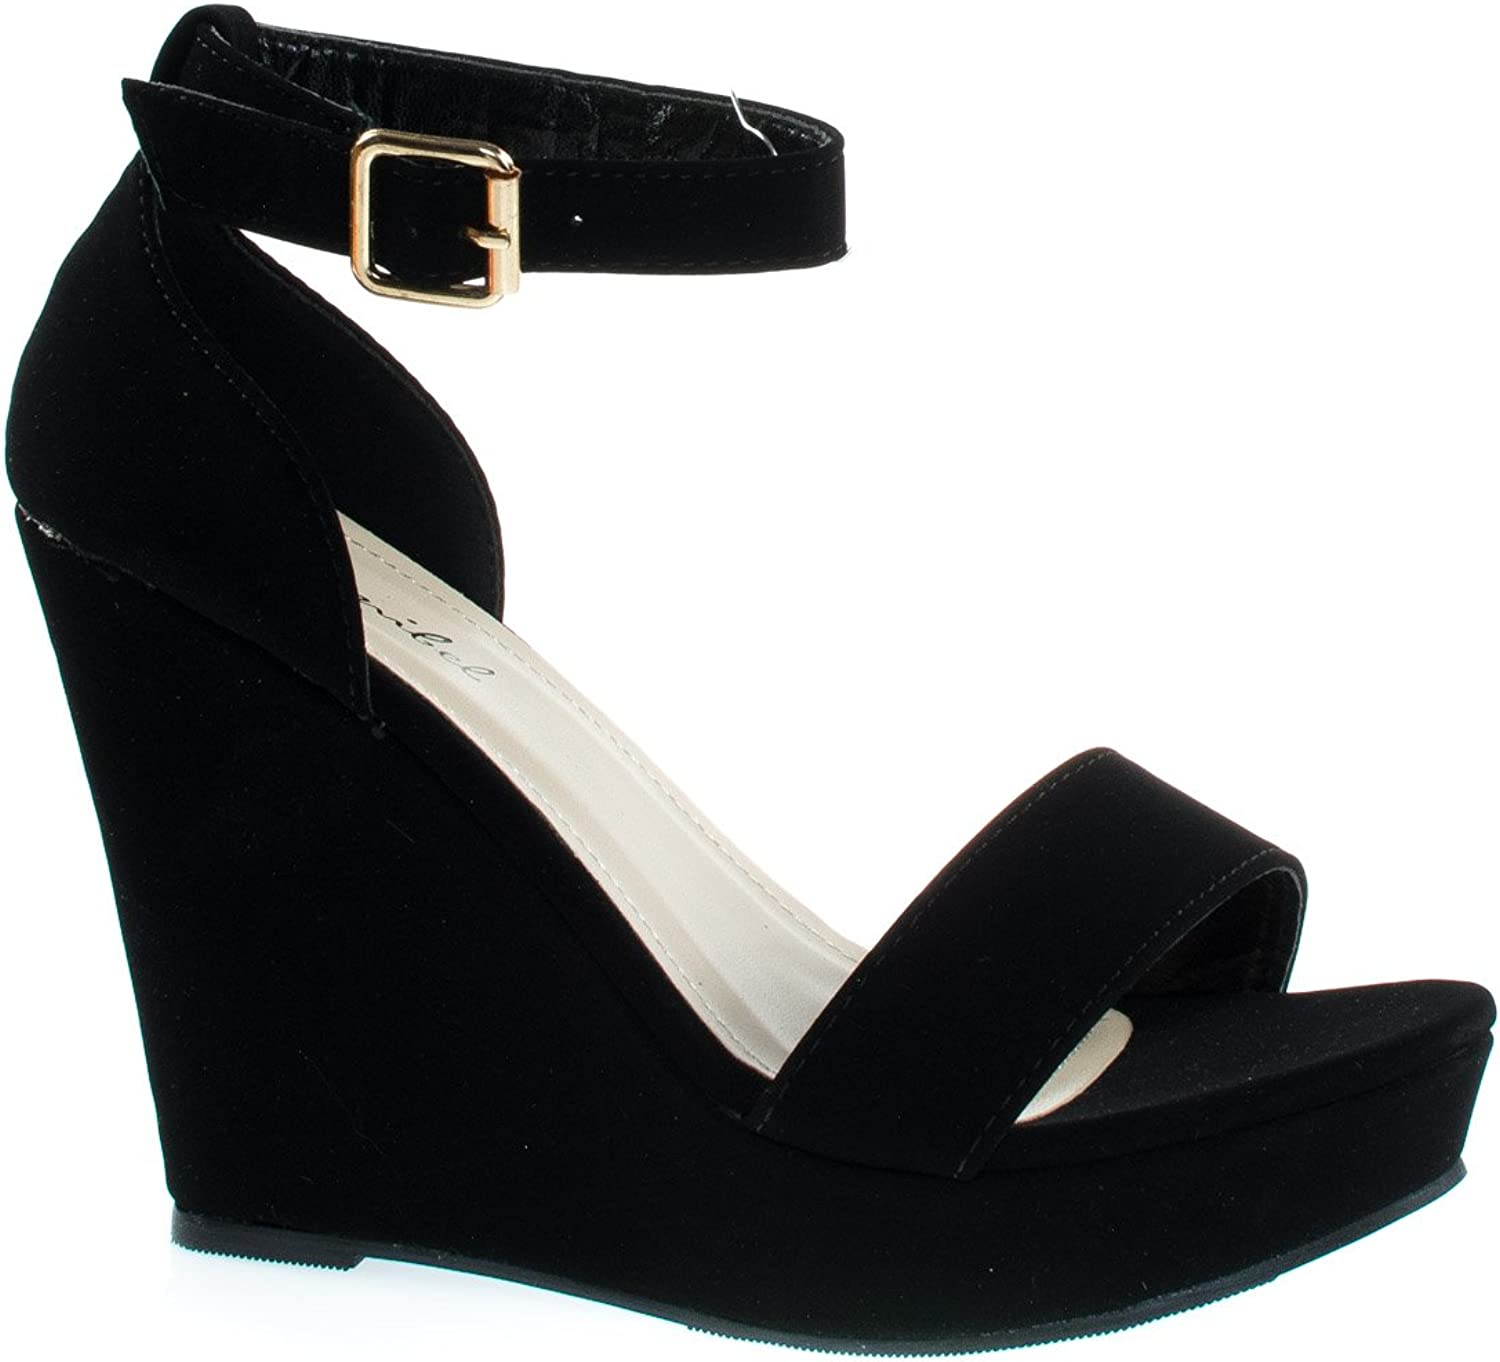 Bonnibel Paige-1 Classic Open Toe Platform Wedge Dress Sandal W Ankle Strap & Heel Counter